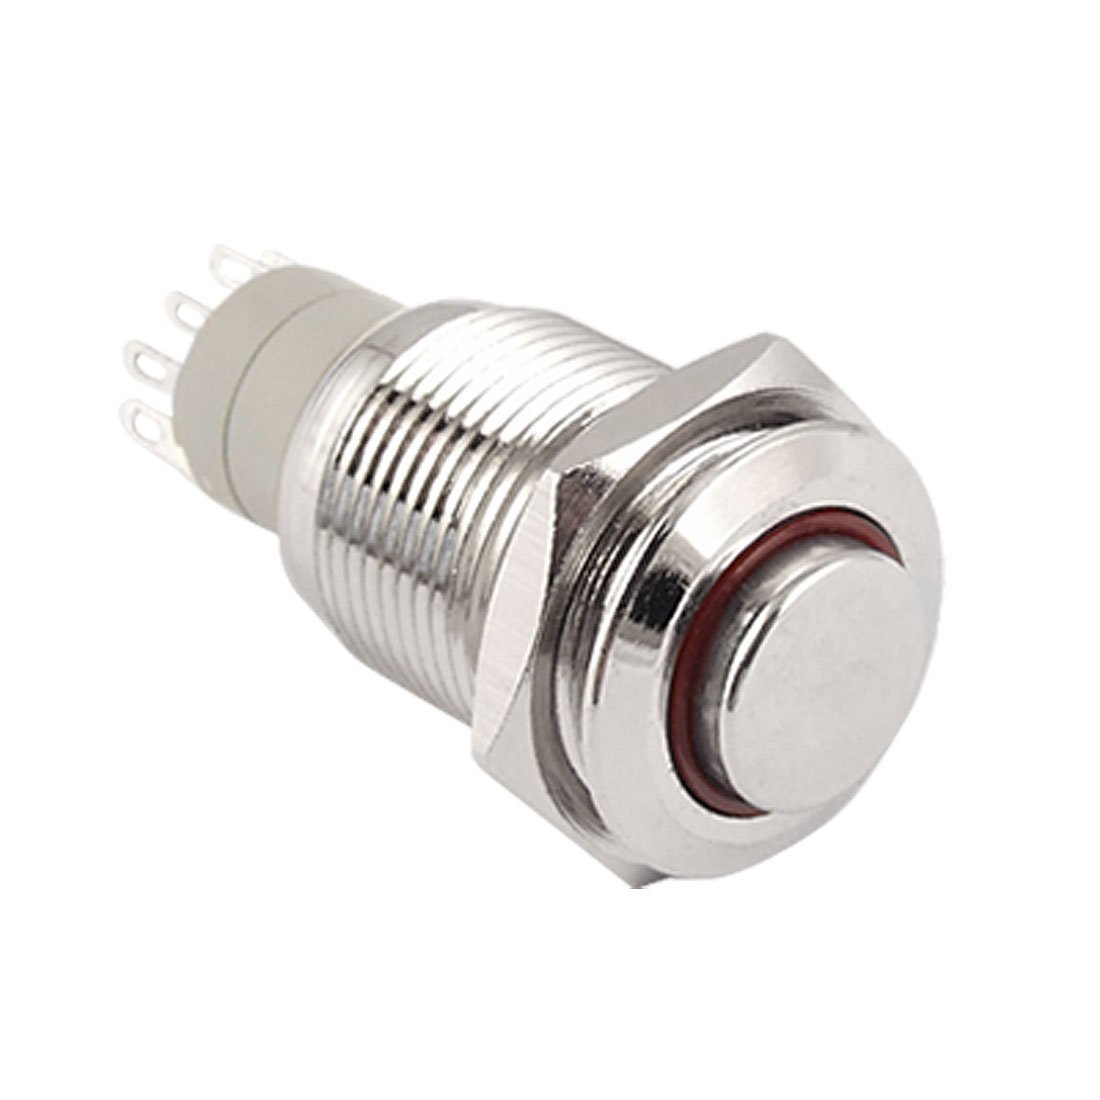 Baomain Push Button Switch Angel Eye RED 12V stainless Steel Switch Latching 5 pin